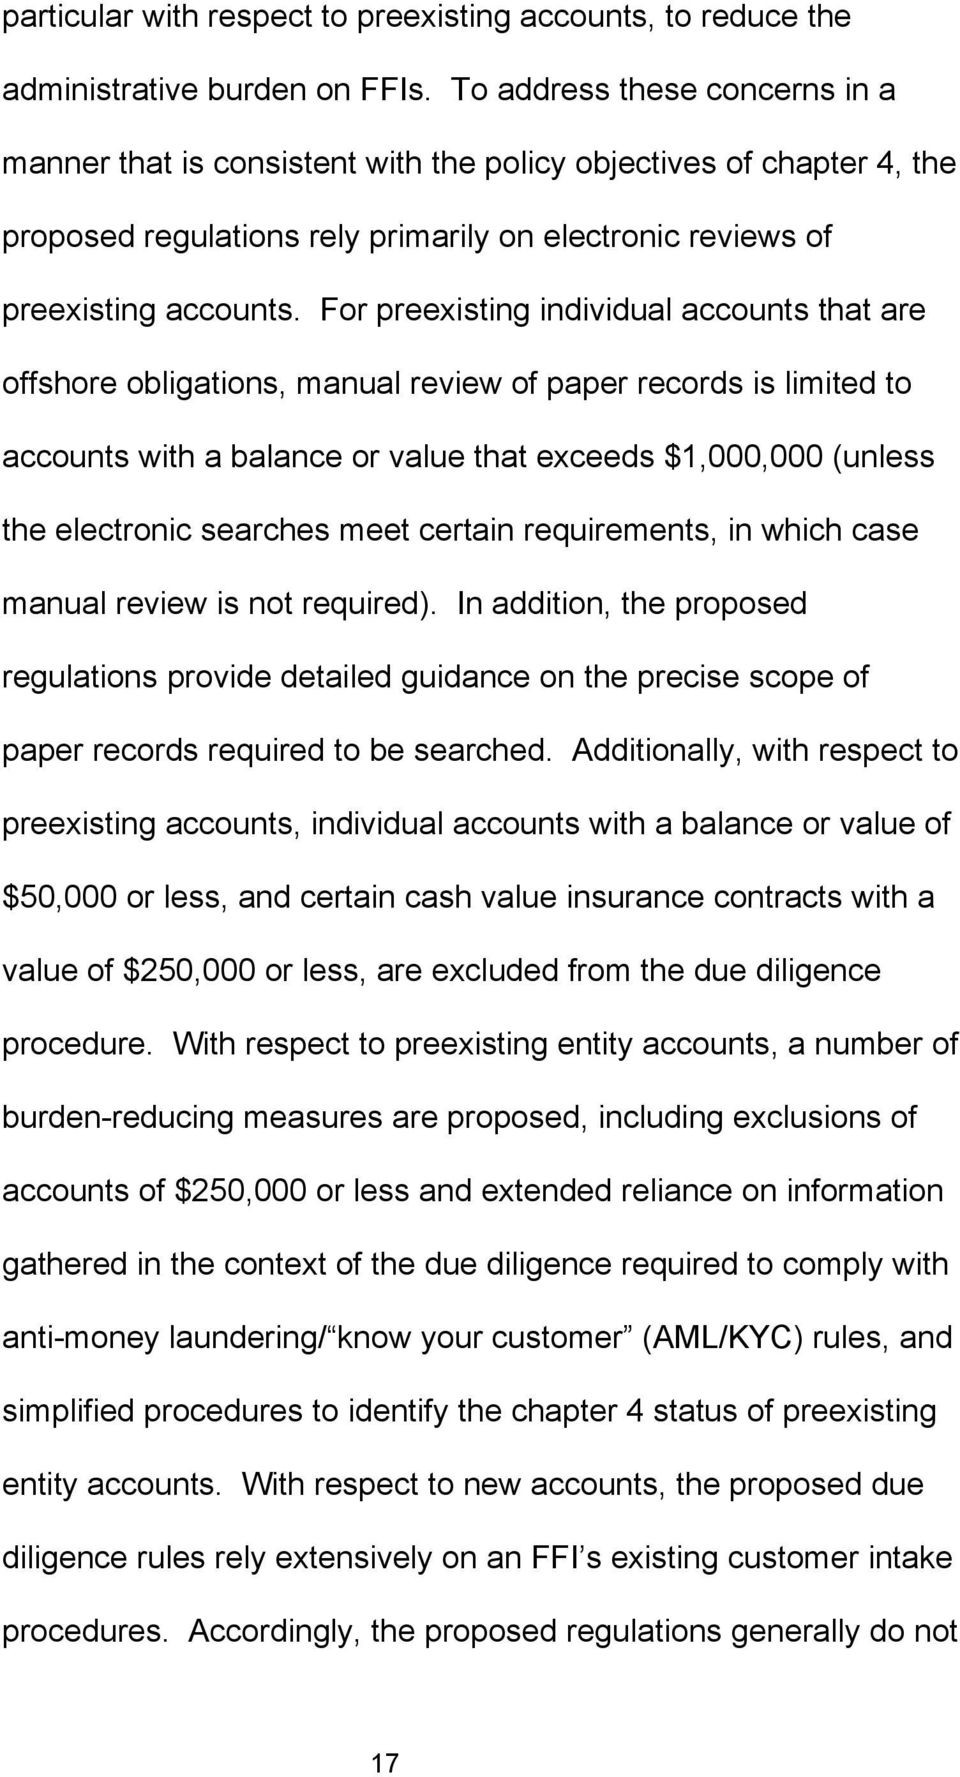 For preexisting individual accounts that are offshore obligations, manual review of paper records is limited to accounts with a balance or value that exceeds $1,000,000 (unless the electronic